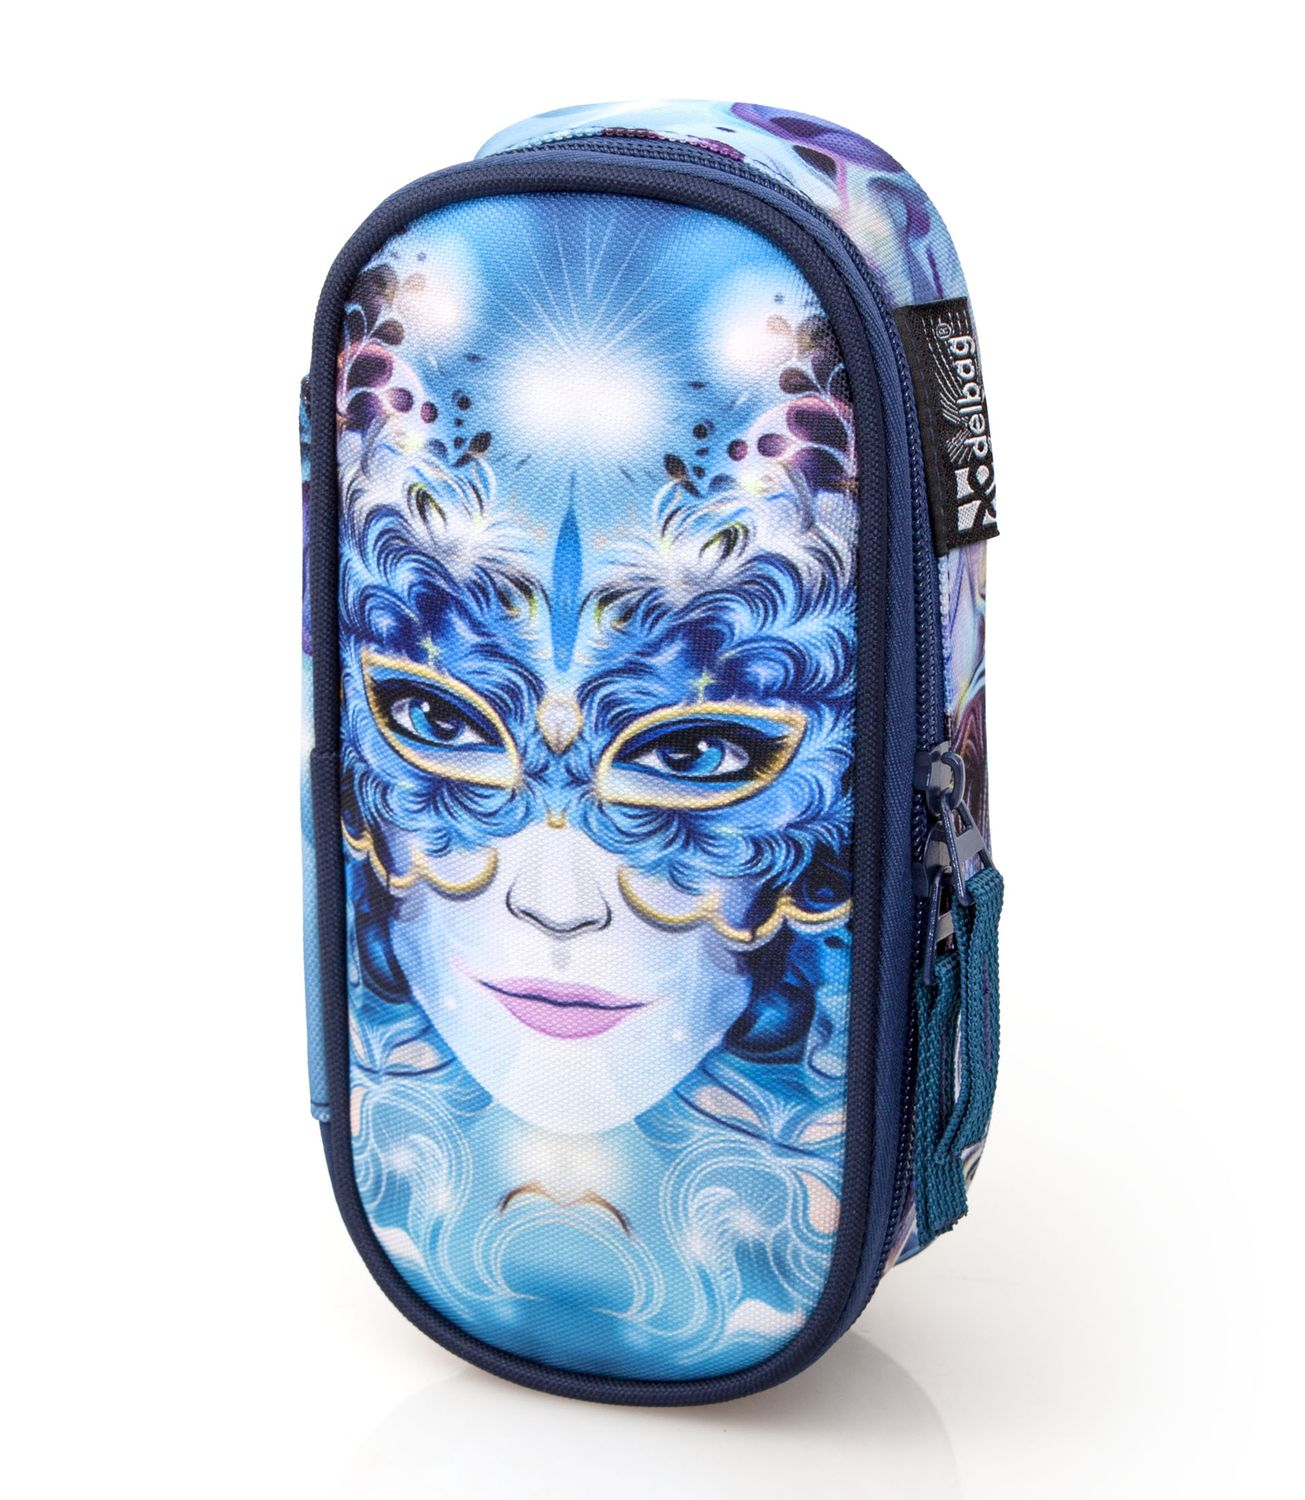 Delbag FANTASTIC MASK Oval Pencil Case – image 1